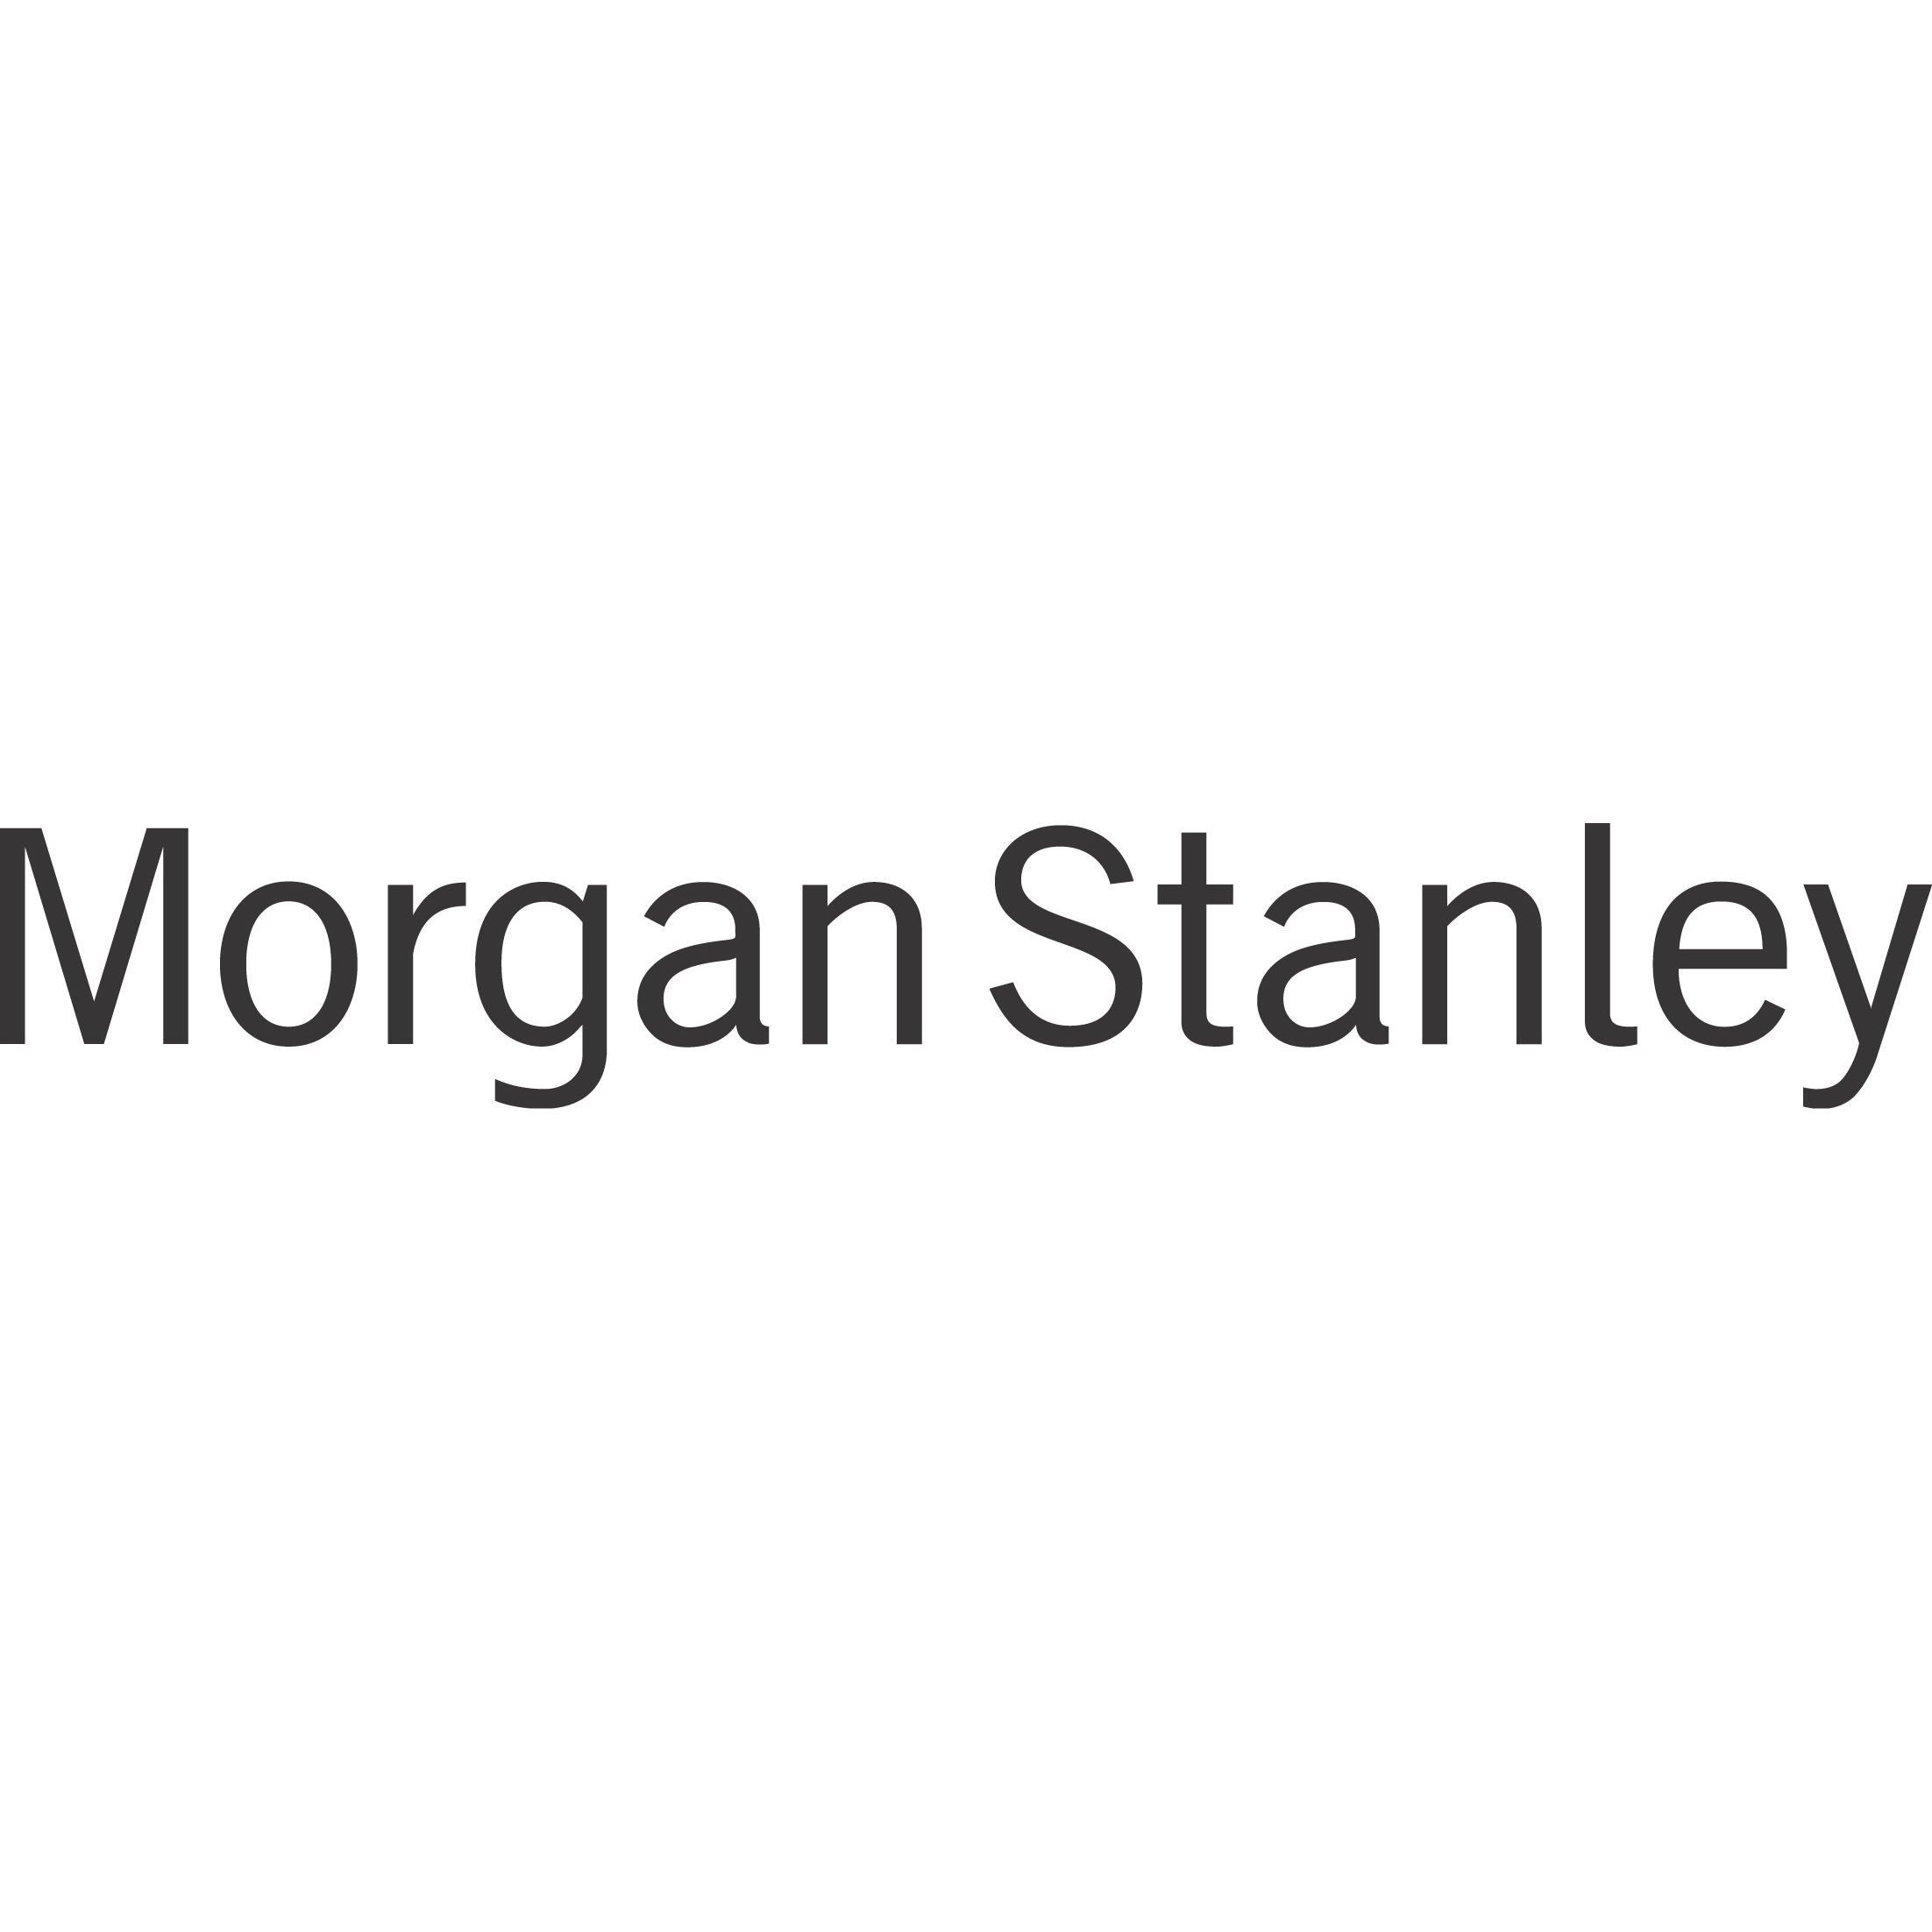 Gregory D Cho - Morgan Stanley | Financial Advisor in Santa Rosa,California